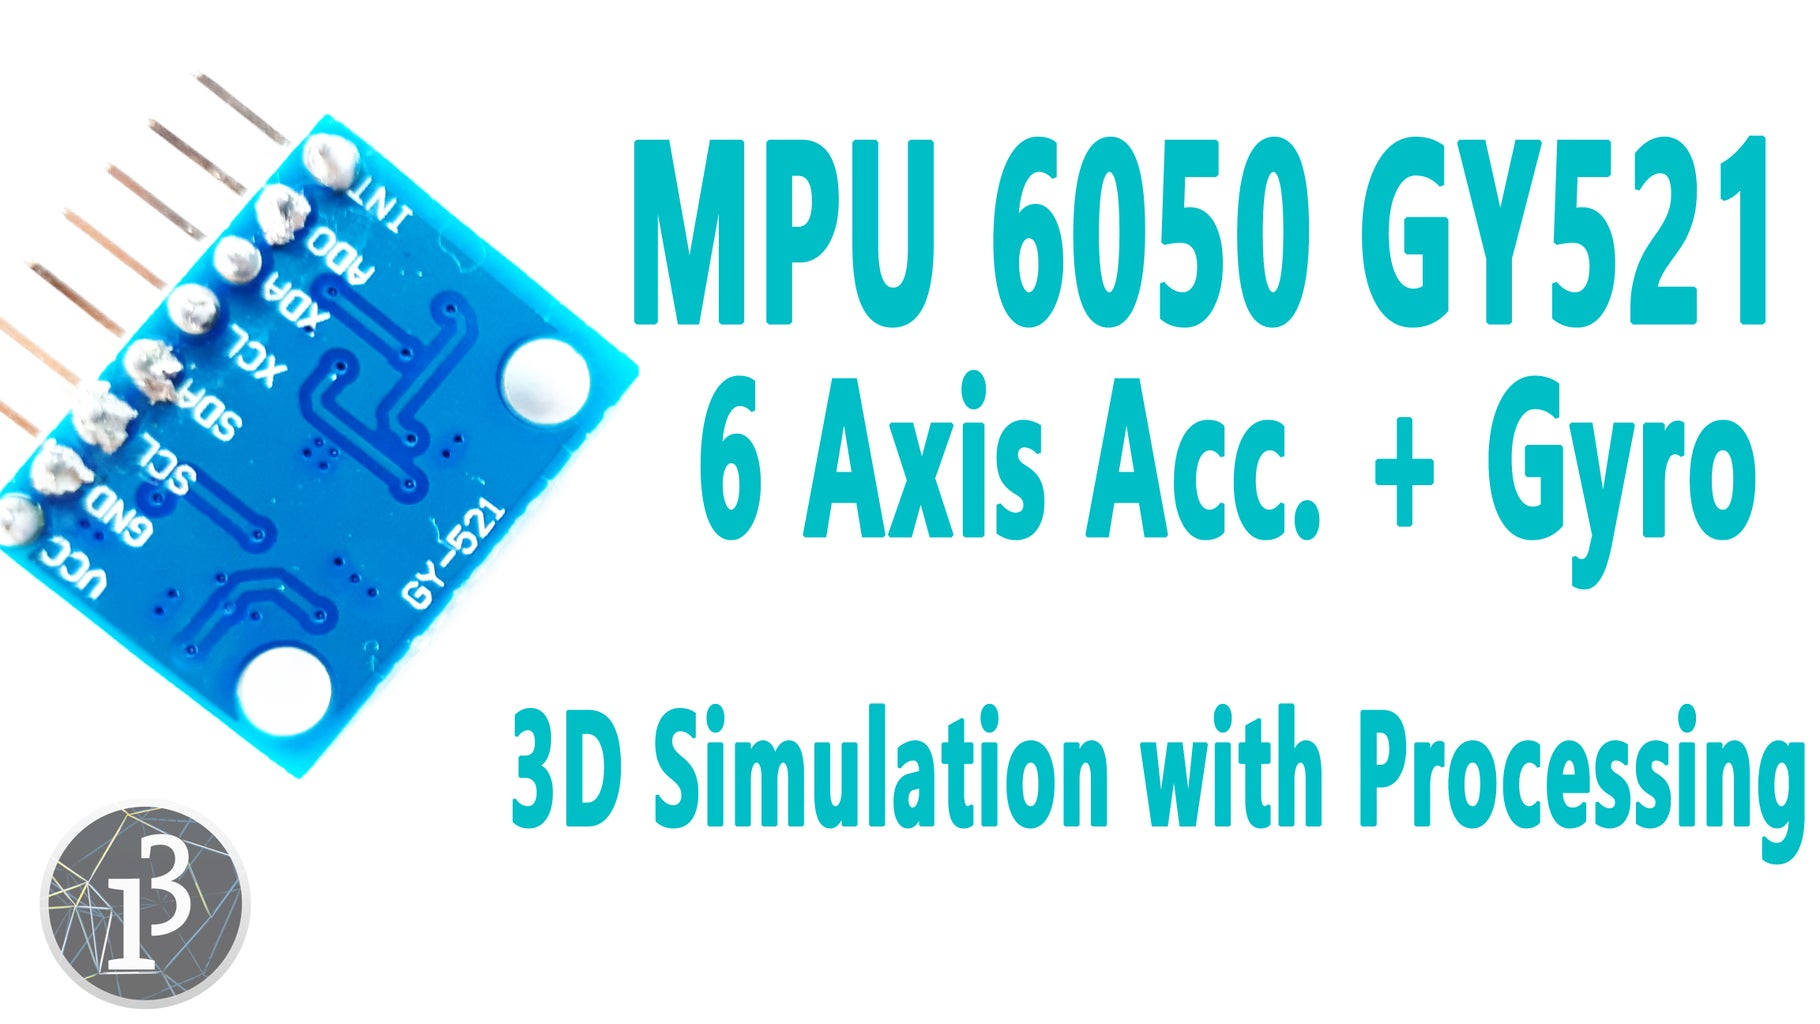 Arduino - MPU6050 GY521 - 6 Axis Accelerometer + Gyro (3D Simulation With Processing)